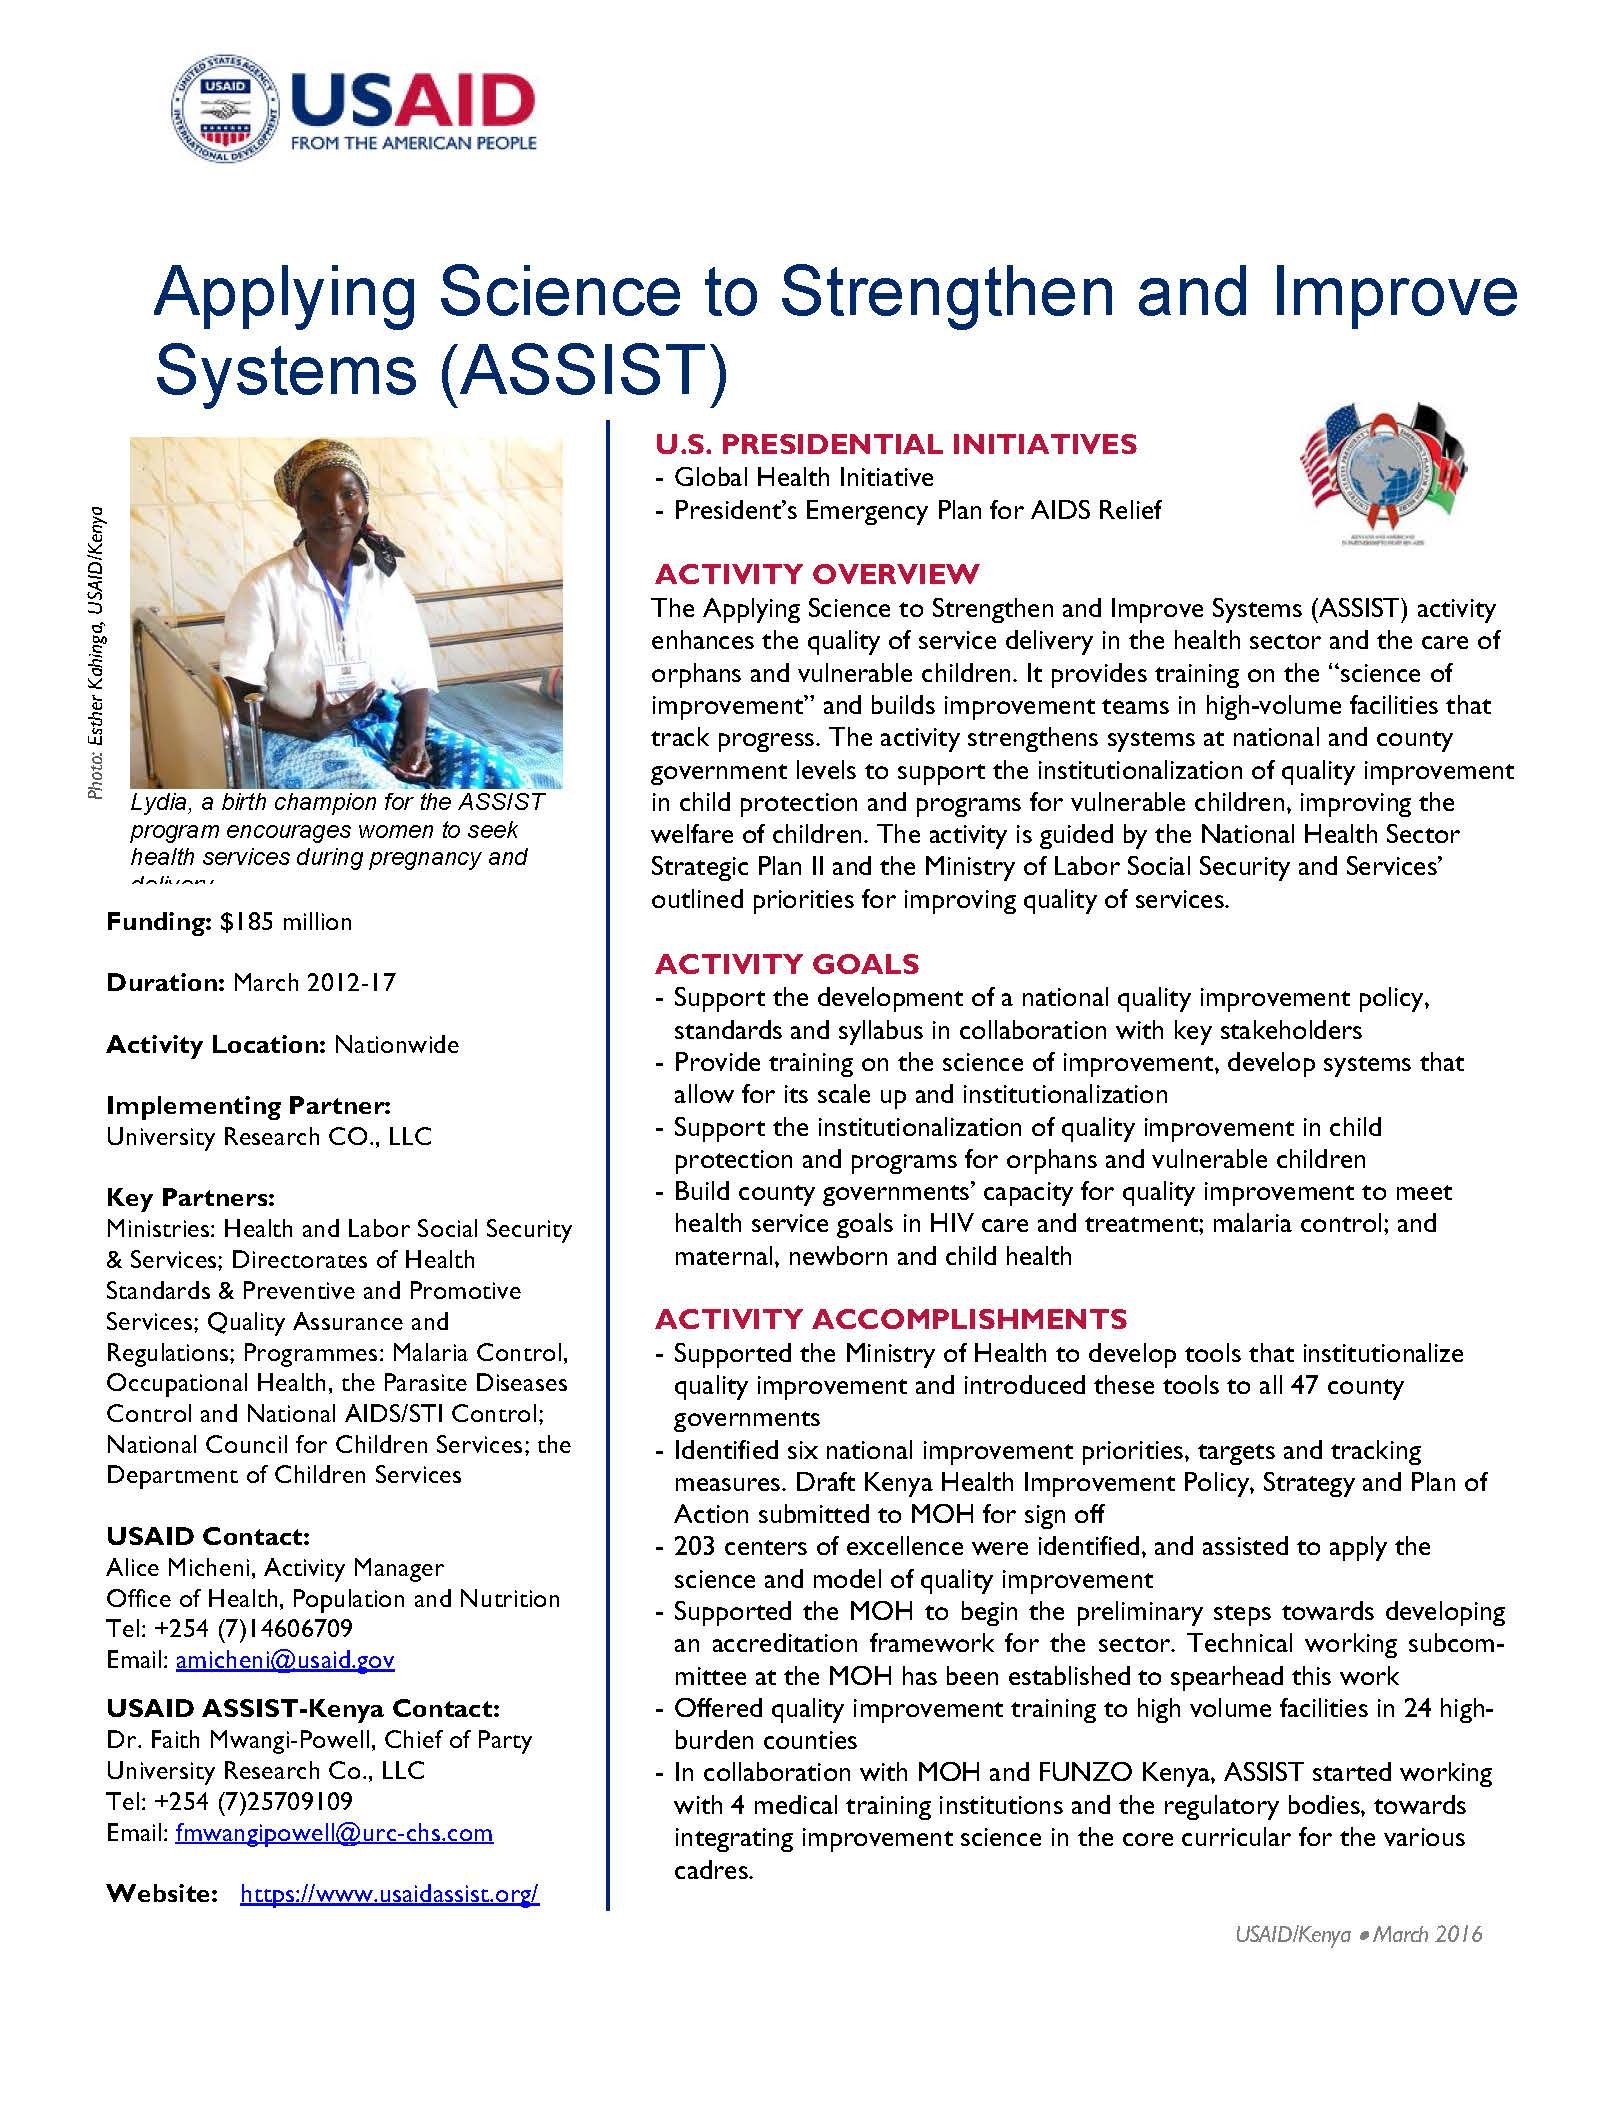 Applying Science to Strengthen and Improve Systems (ASSIST)